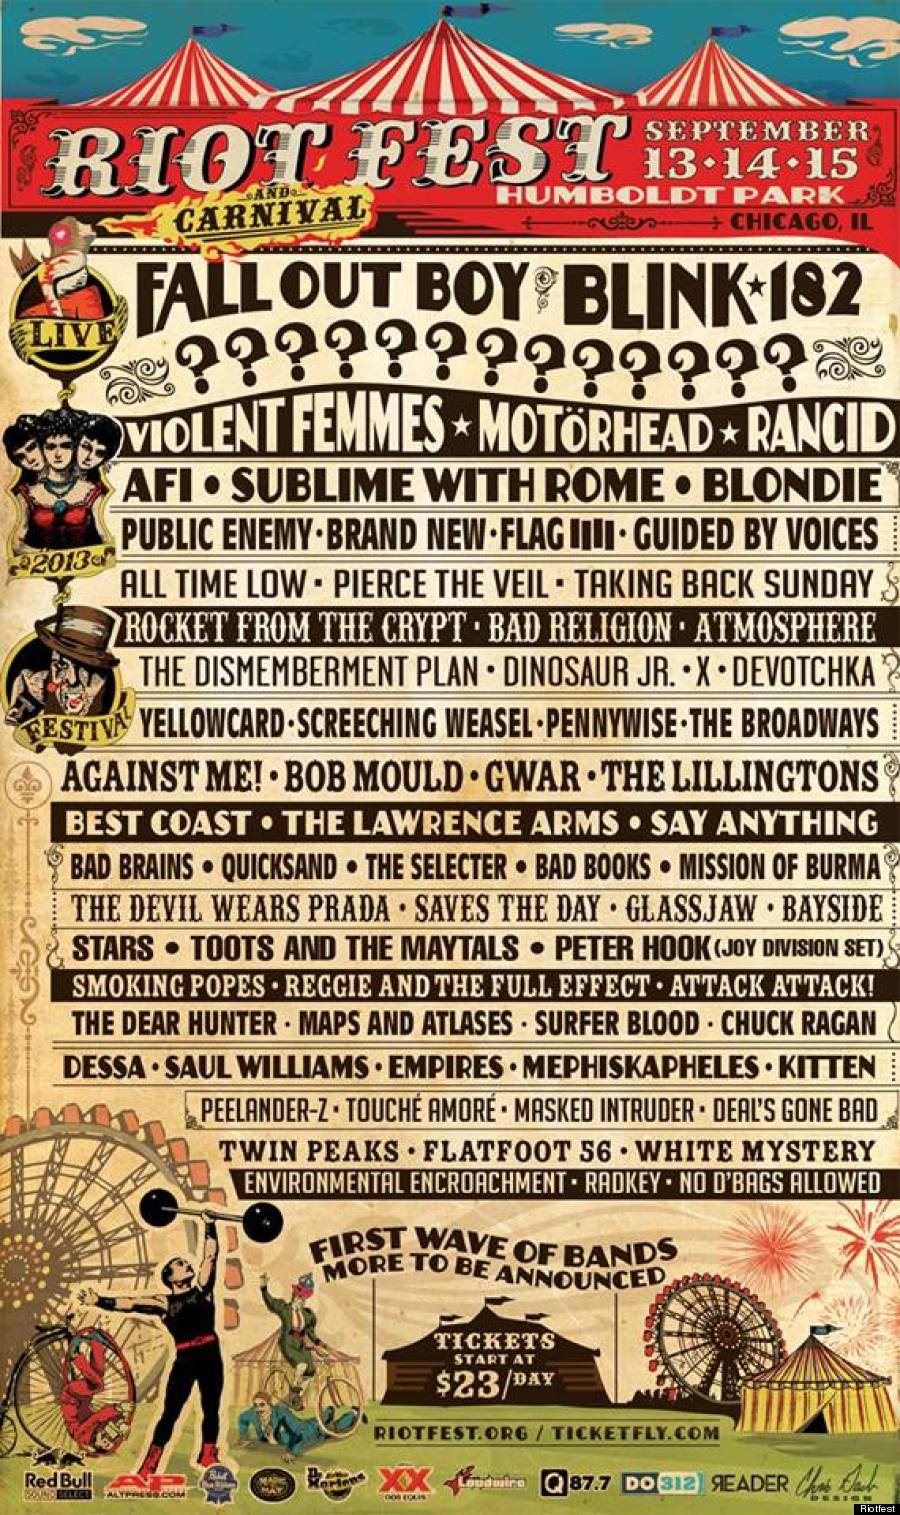 Riot Fest  (and Carnival)   Humboldt Park Chicago, IL   September 13, 14 & 15   More bands to be announced…Coming Soon!!